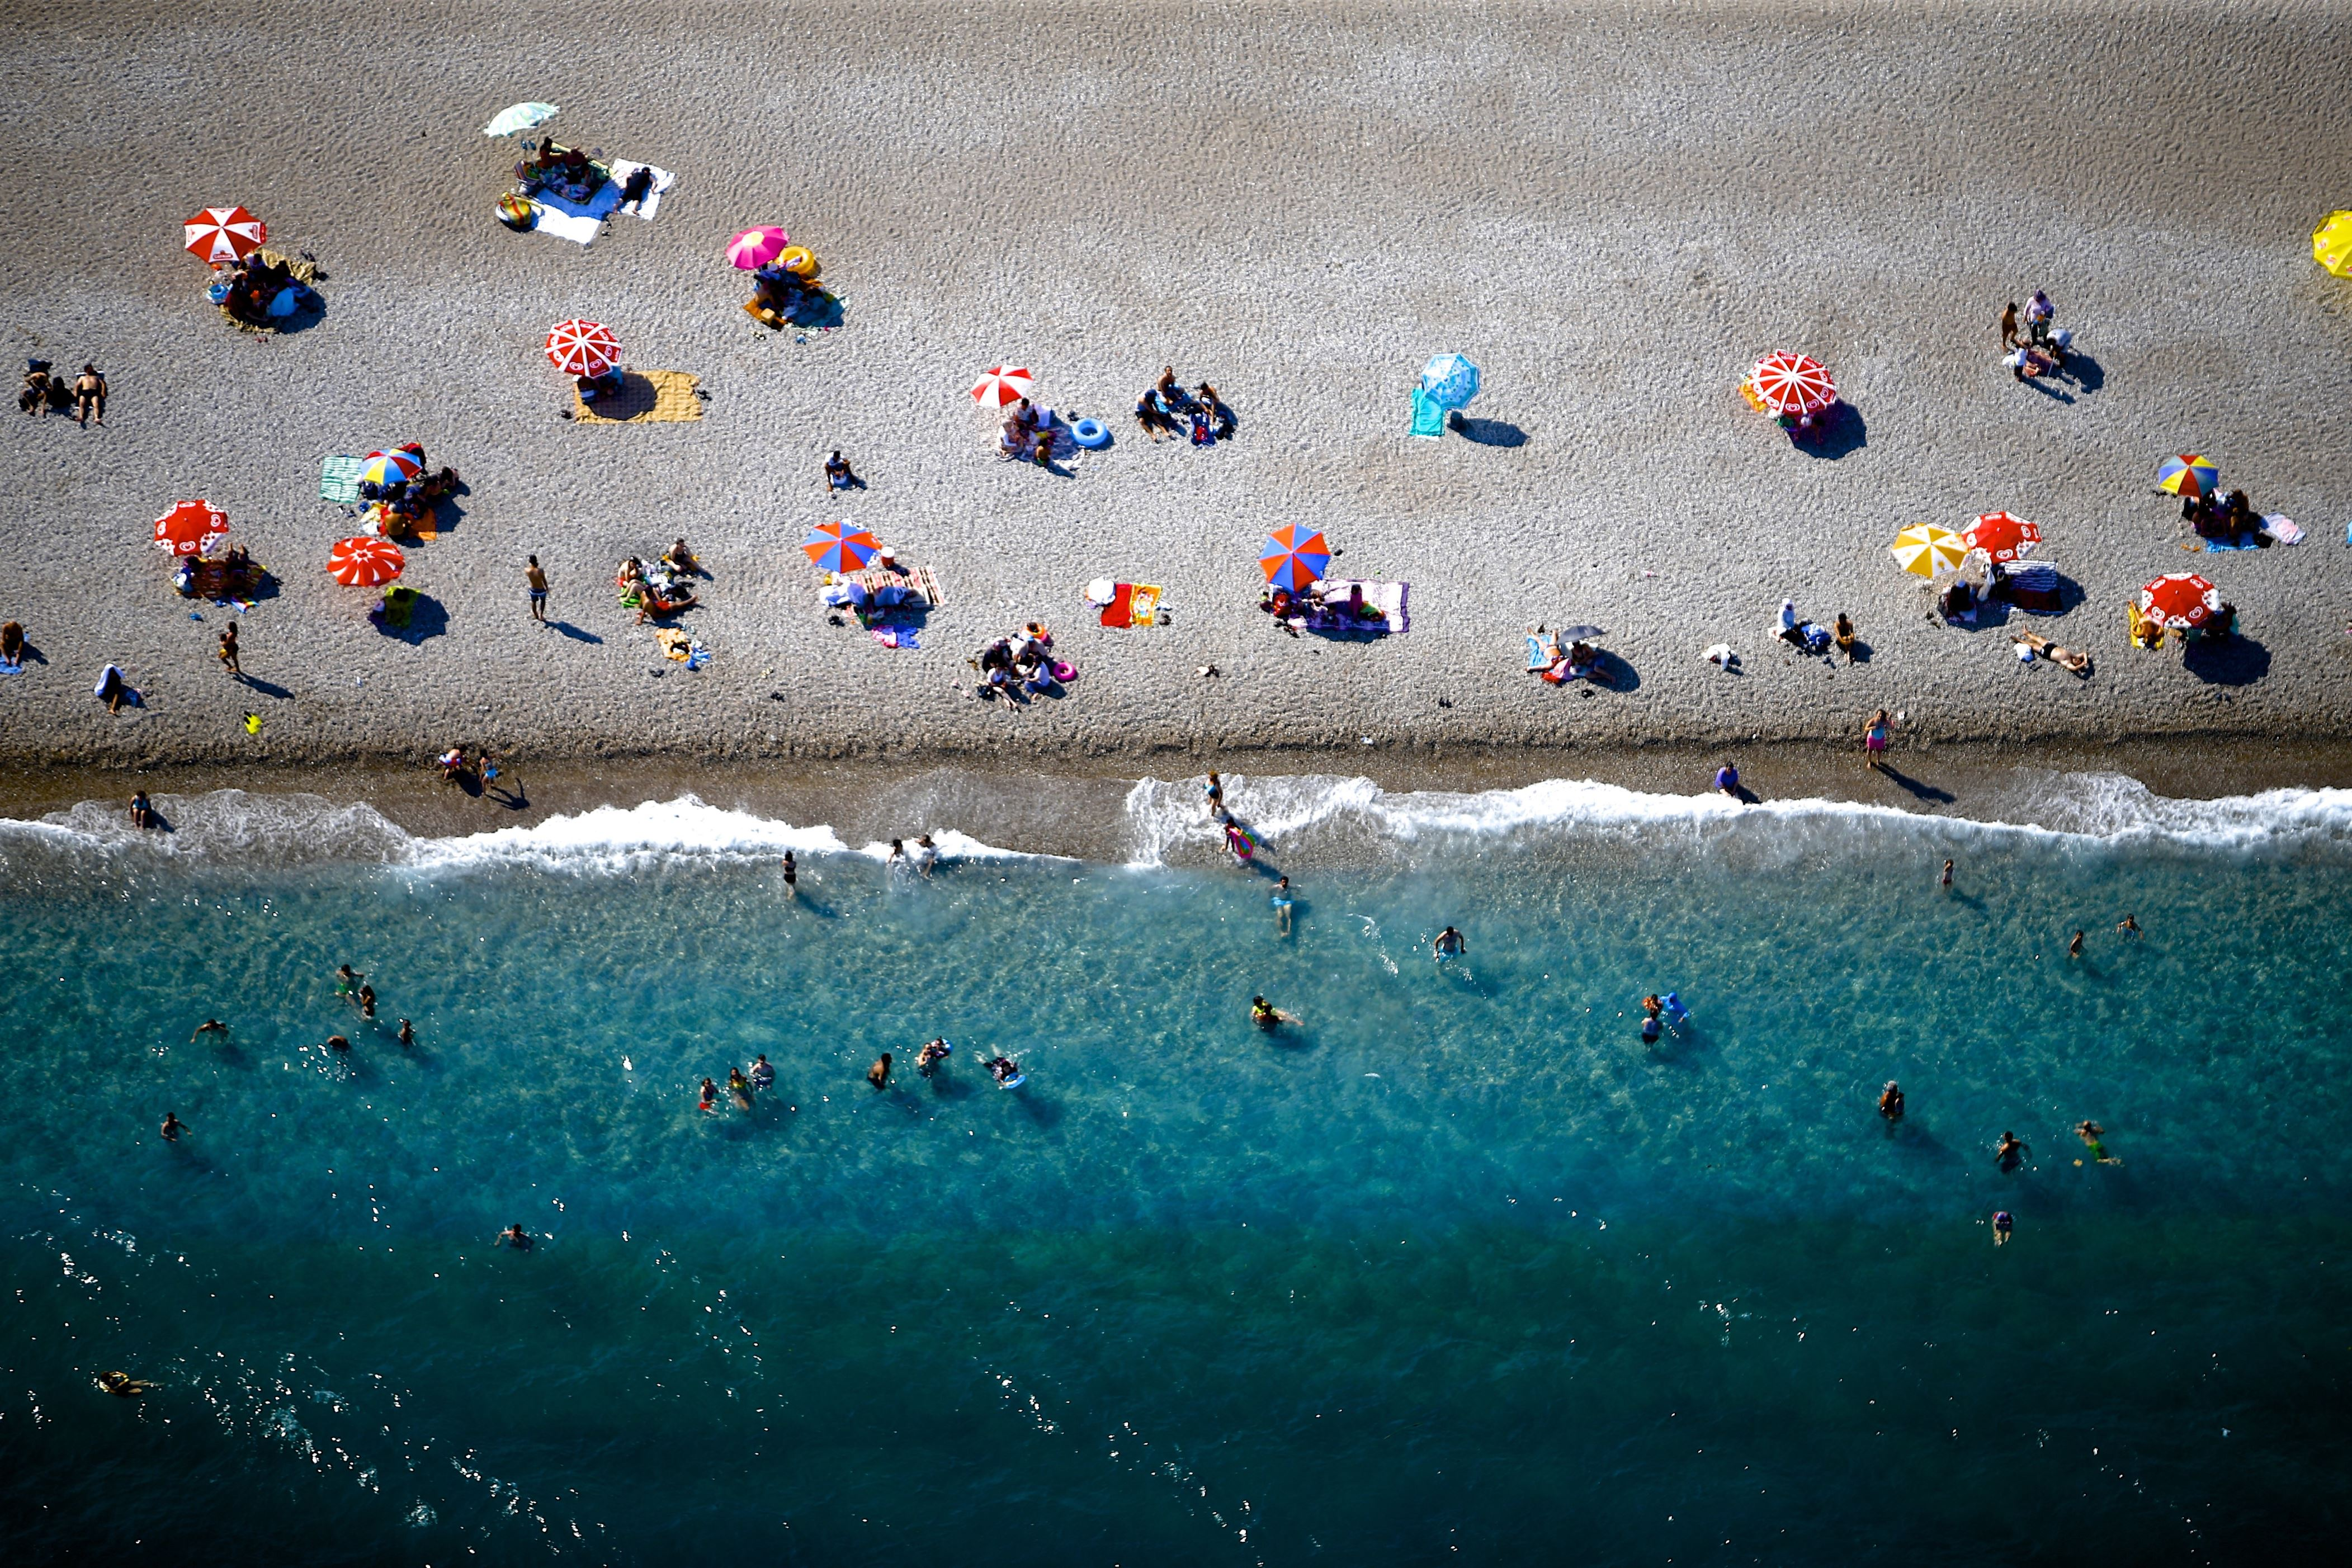 Slide 25 of 39: ANTALYA, TURKEY - JULY 17: An aerial view from a beach in Konyaalti district of Antalya, Turkey on July 17, 2017. Antalya is a home to world-famous beaches and natural beauties. (Photo by Mustafa Ciftci/Anadolu Agency/Getty Images)